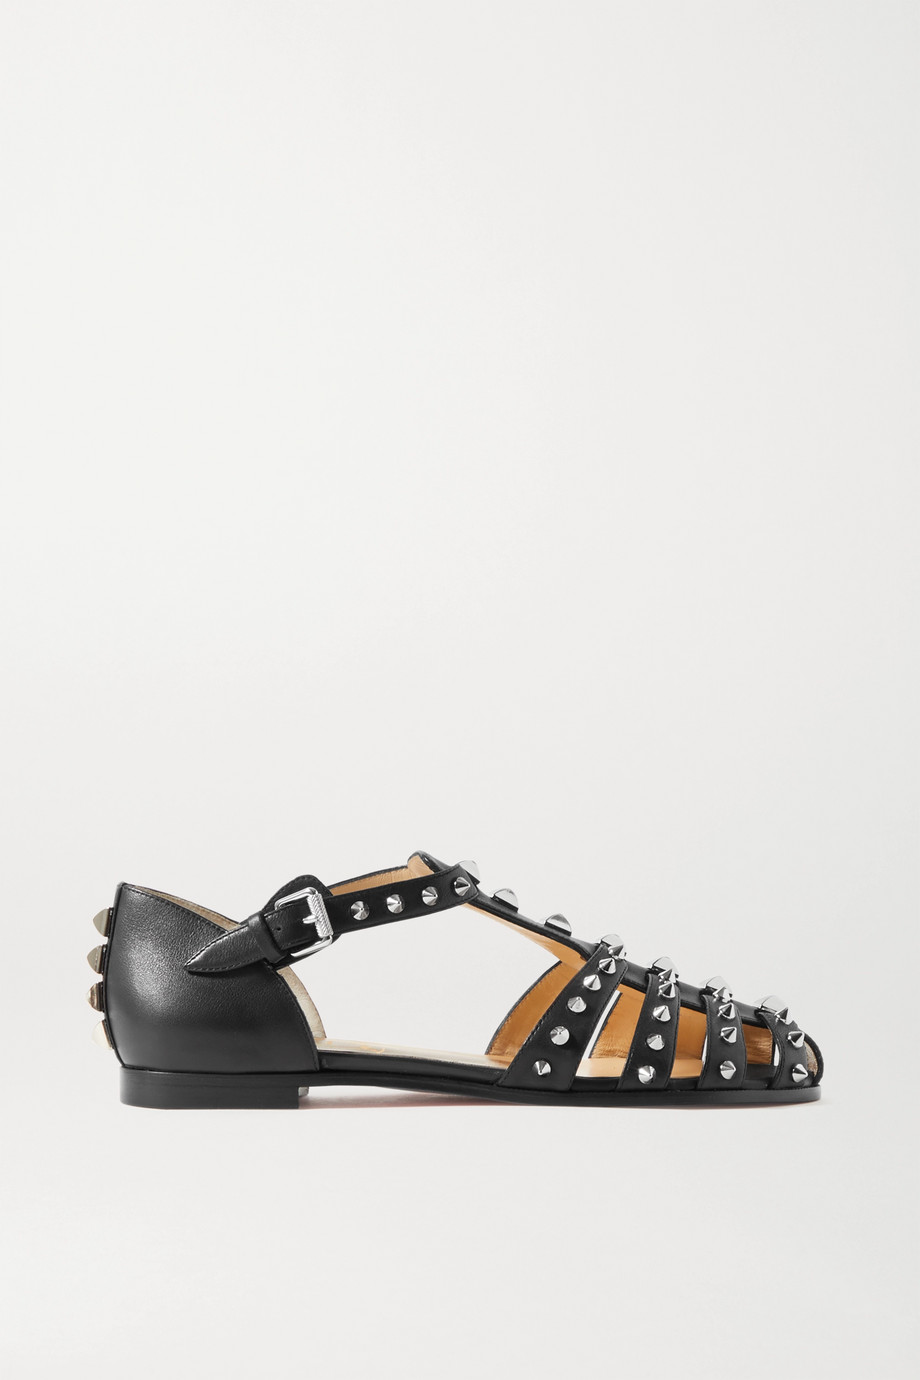 CHRISTIAN LOUBOUTIN LoubiClou studded leather sandals